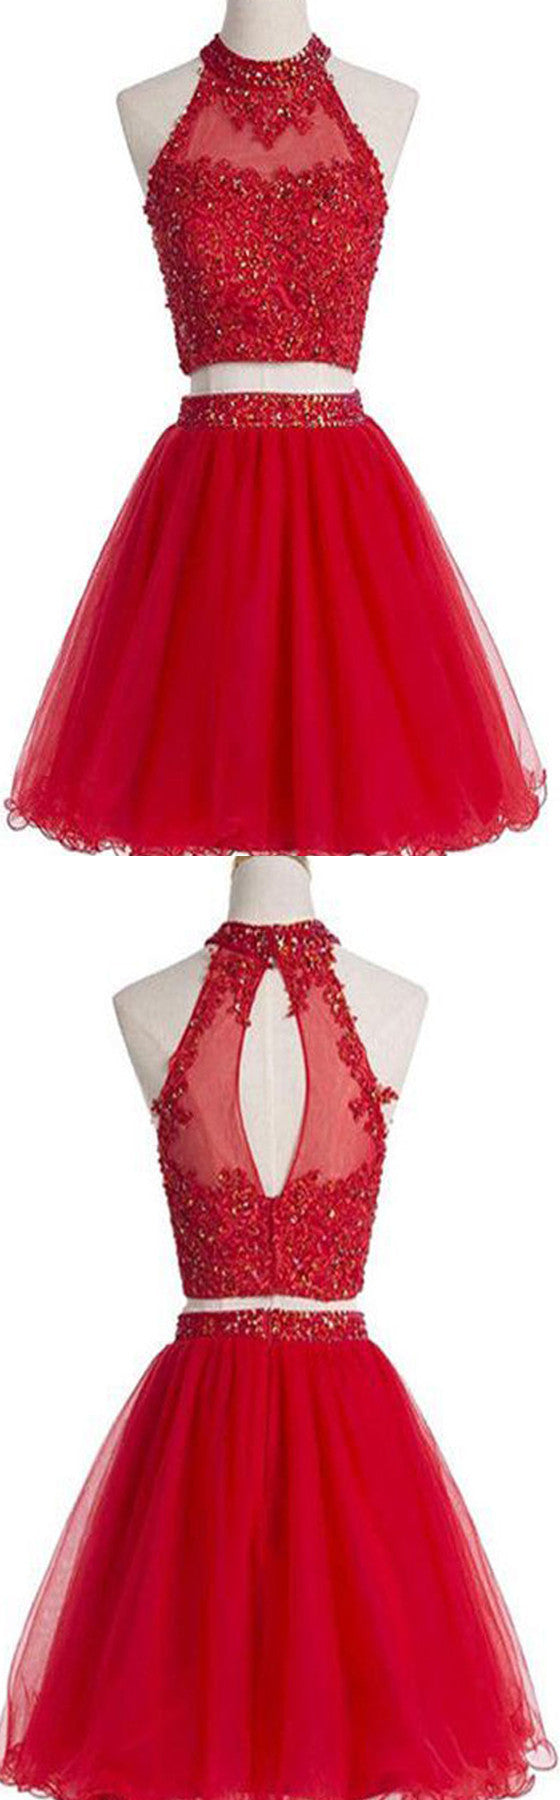 Red Two Pieces Halter Open Back Cute Homecoming Dresses, BG51452